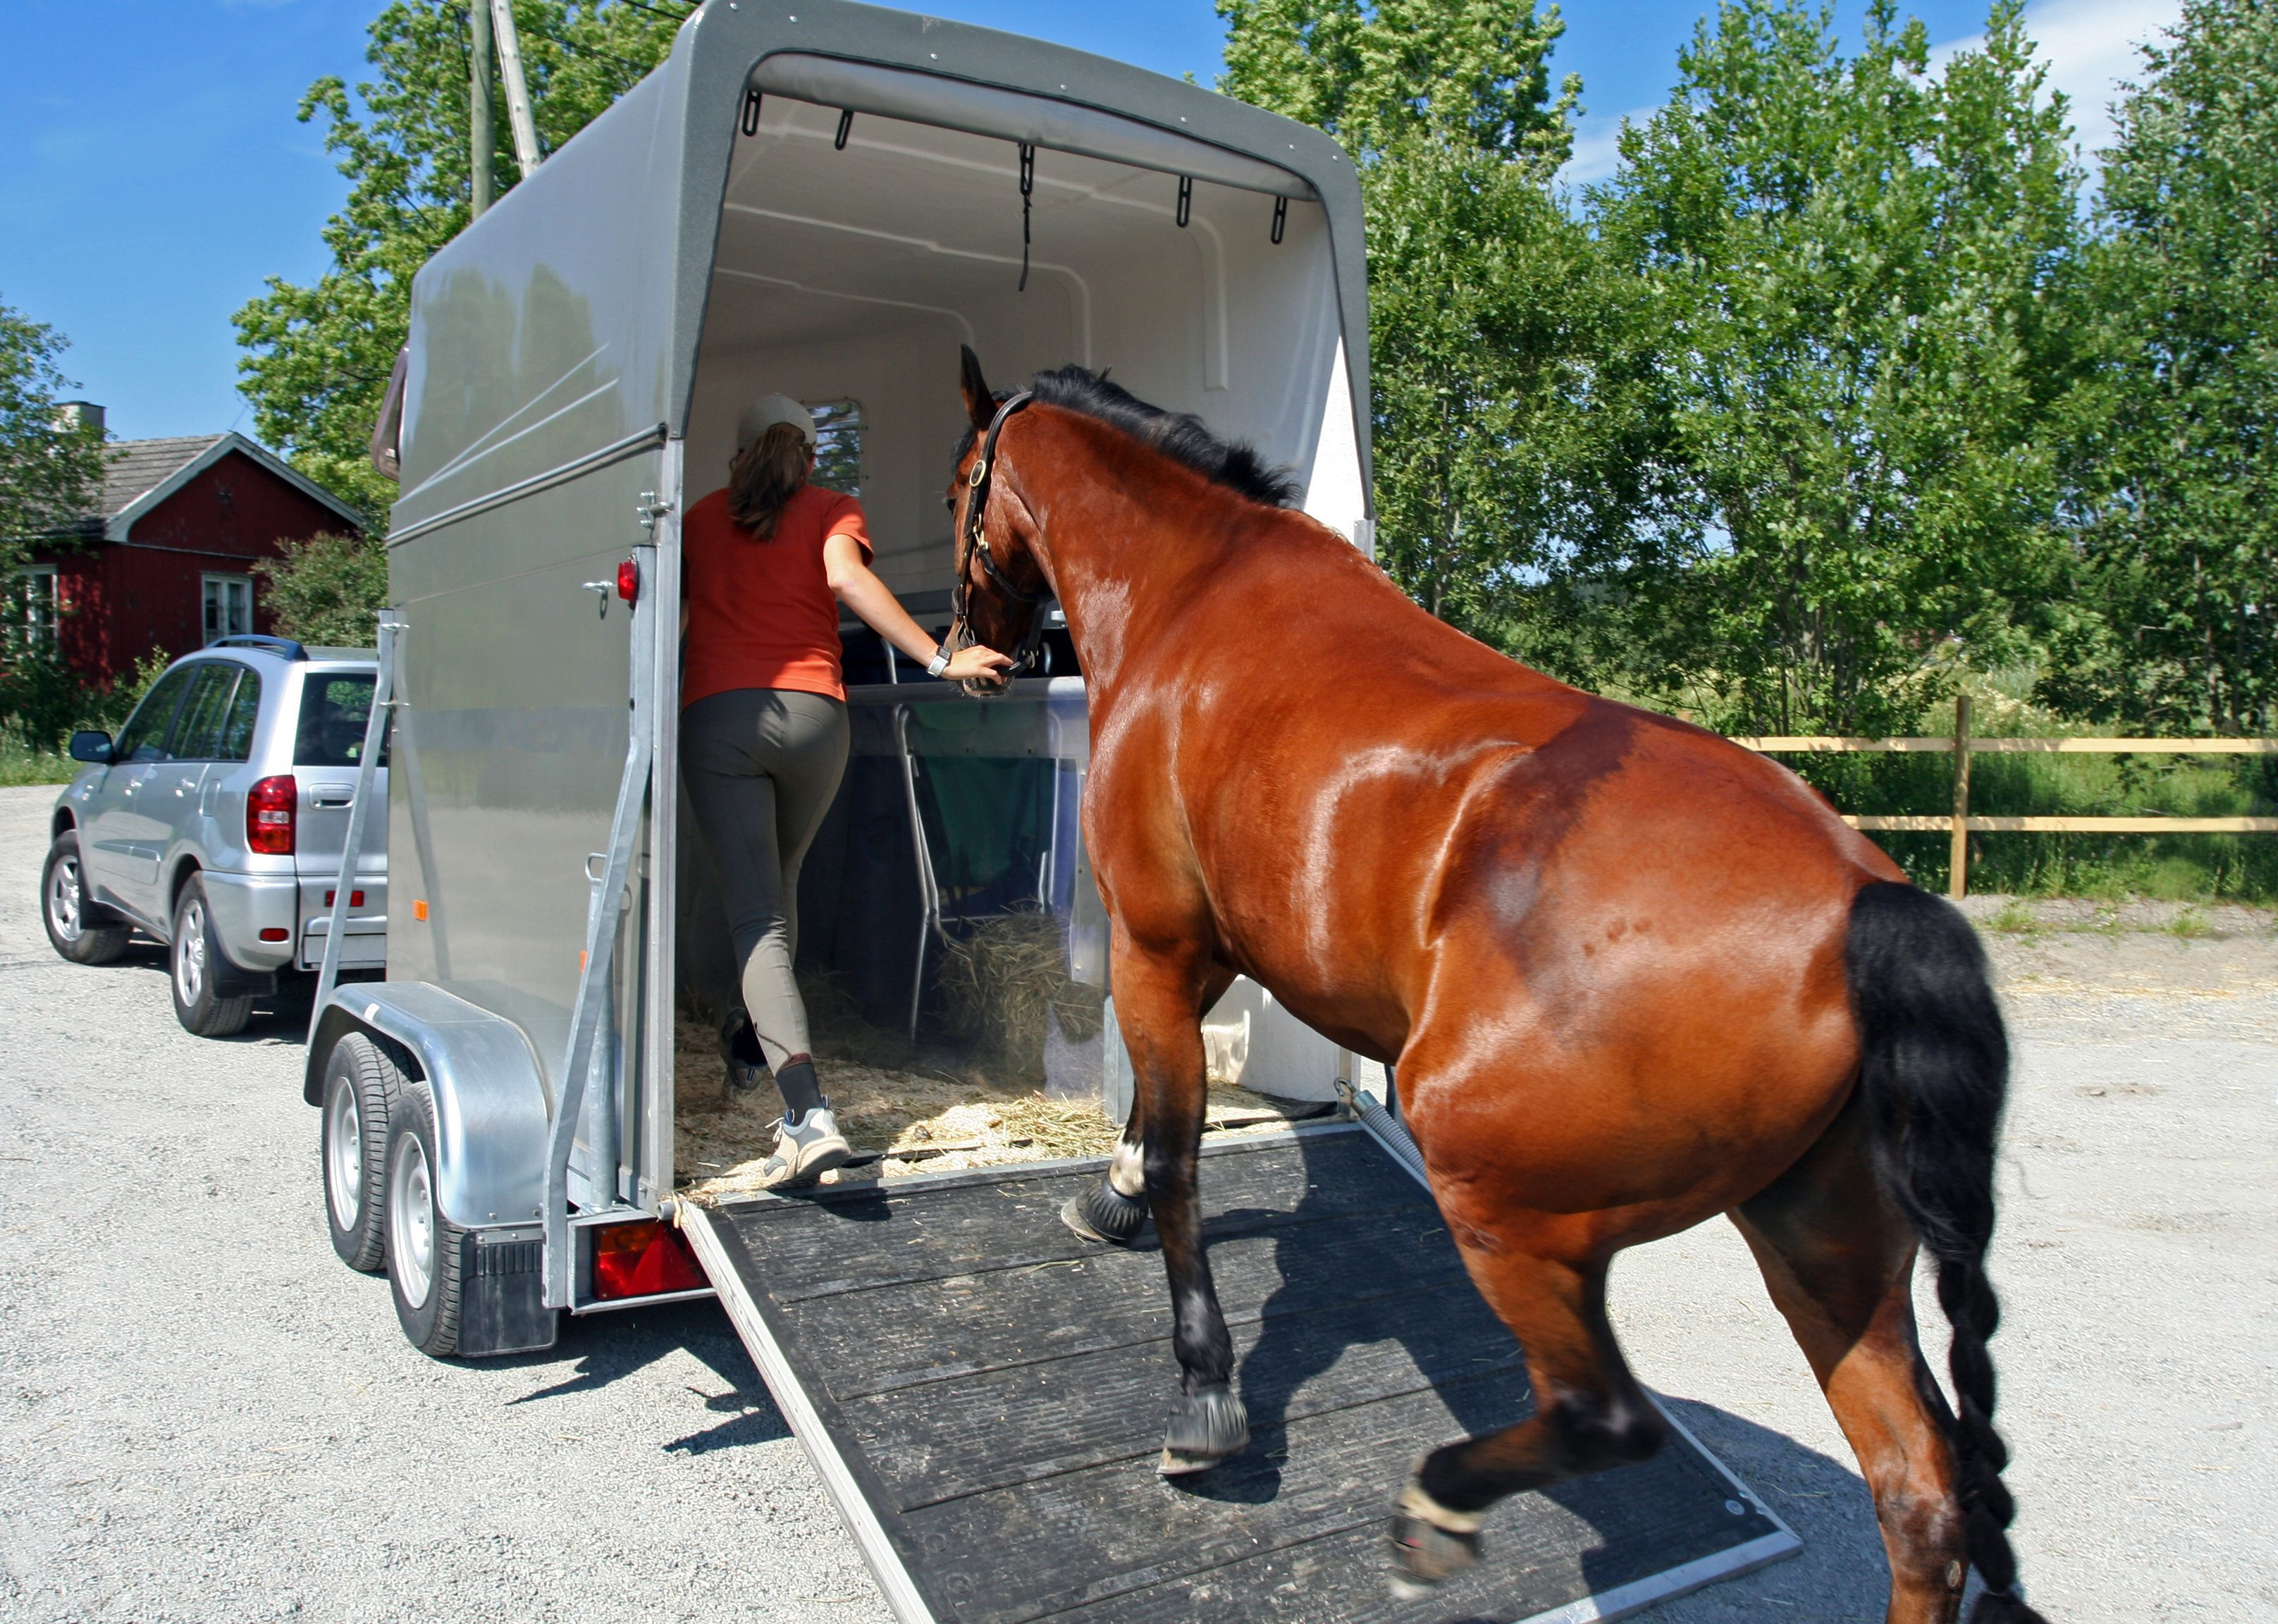 Lady leading horse up ramp into trailer